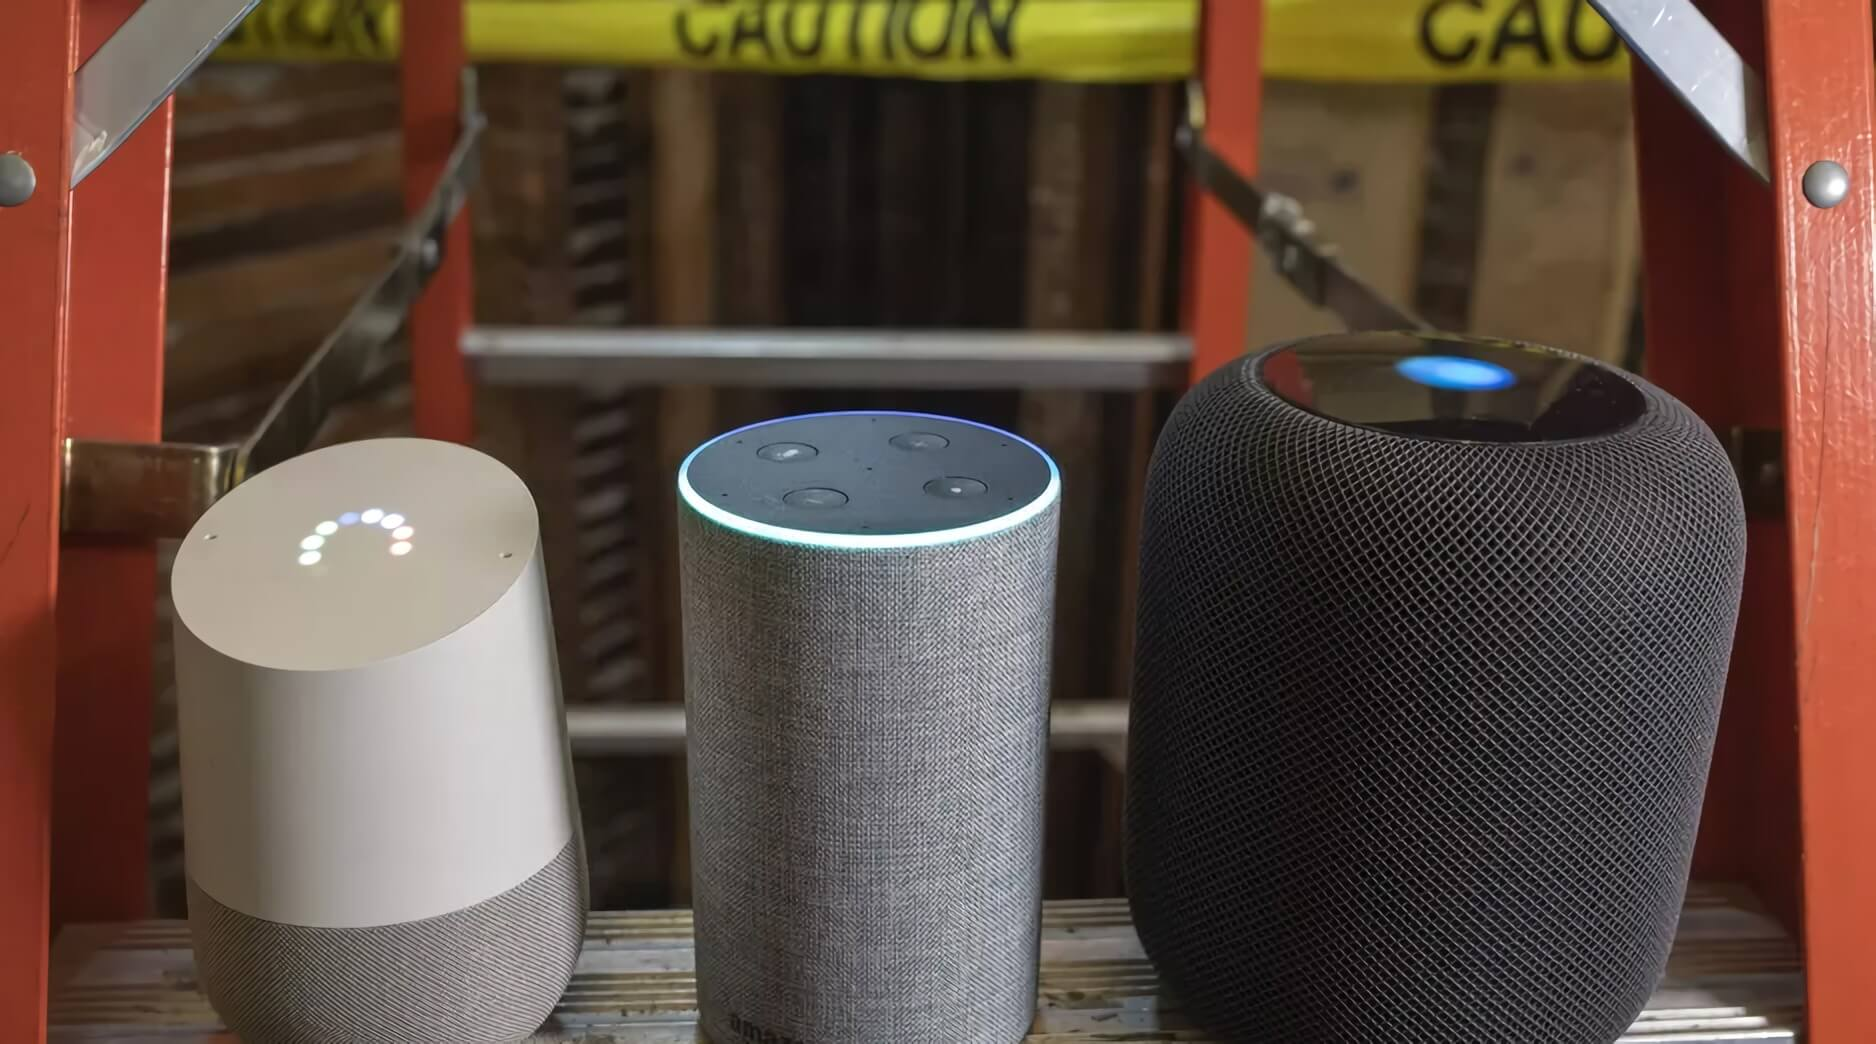 Virtual digital assistants aren't yet ready to save your life